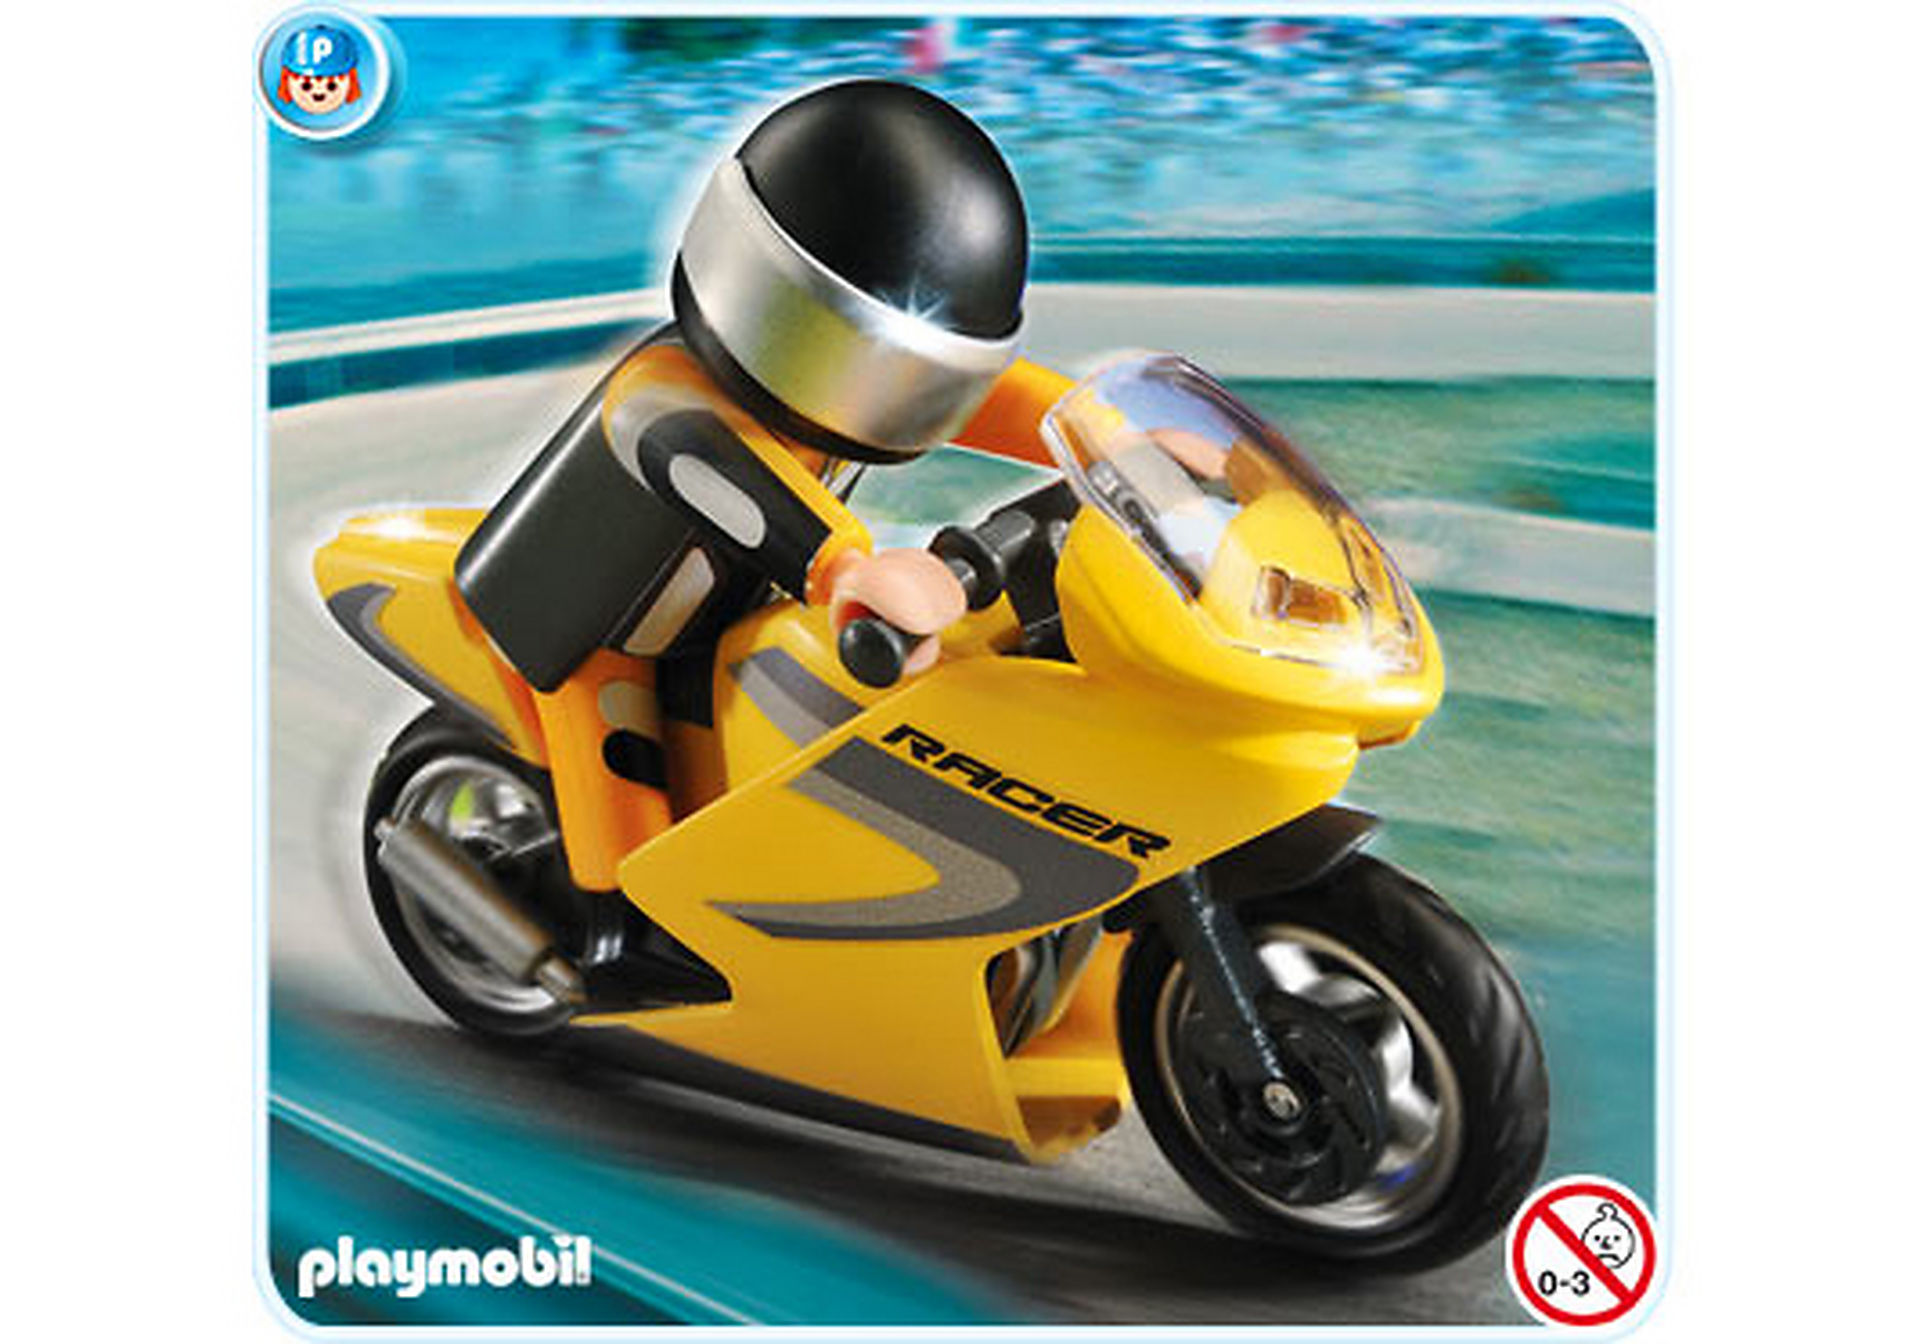 http://media.playmobil.com/i/playmobil/5116-A_product_detail/Supersportler